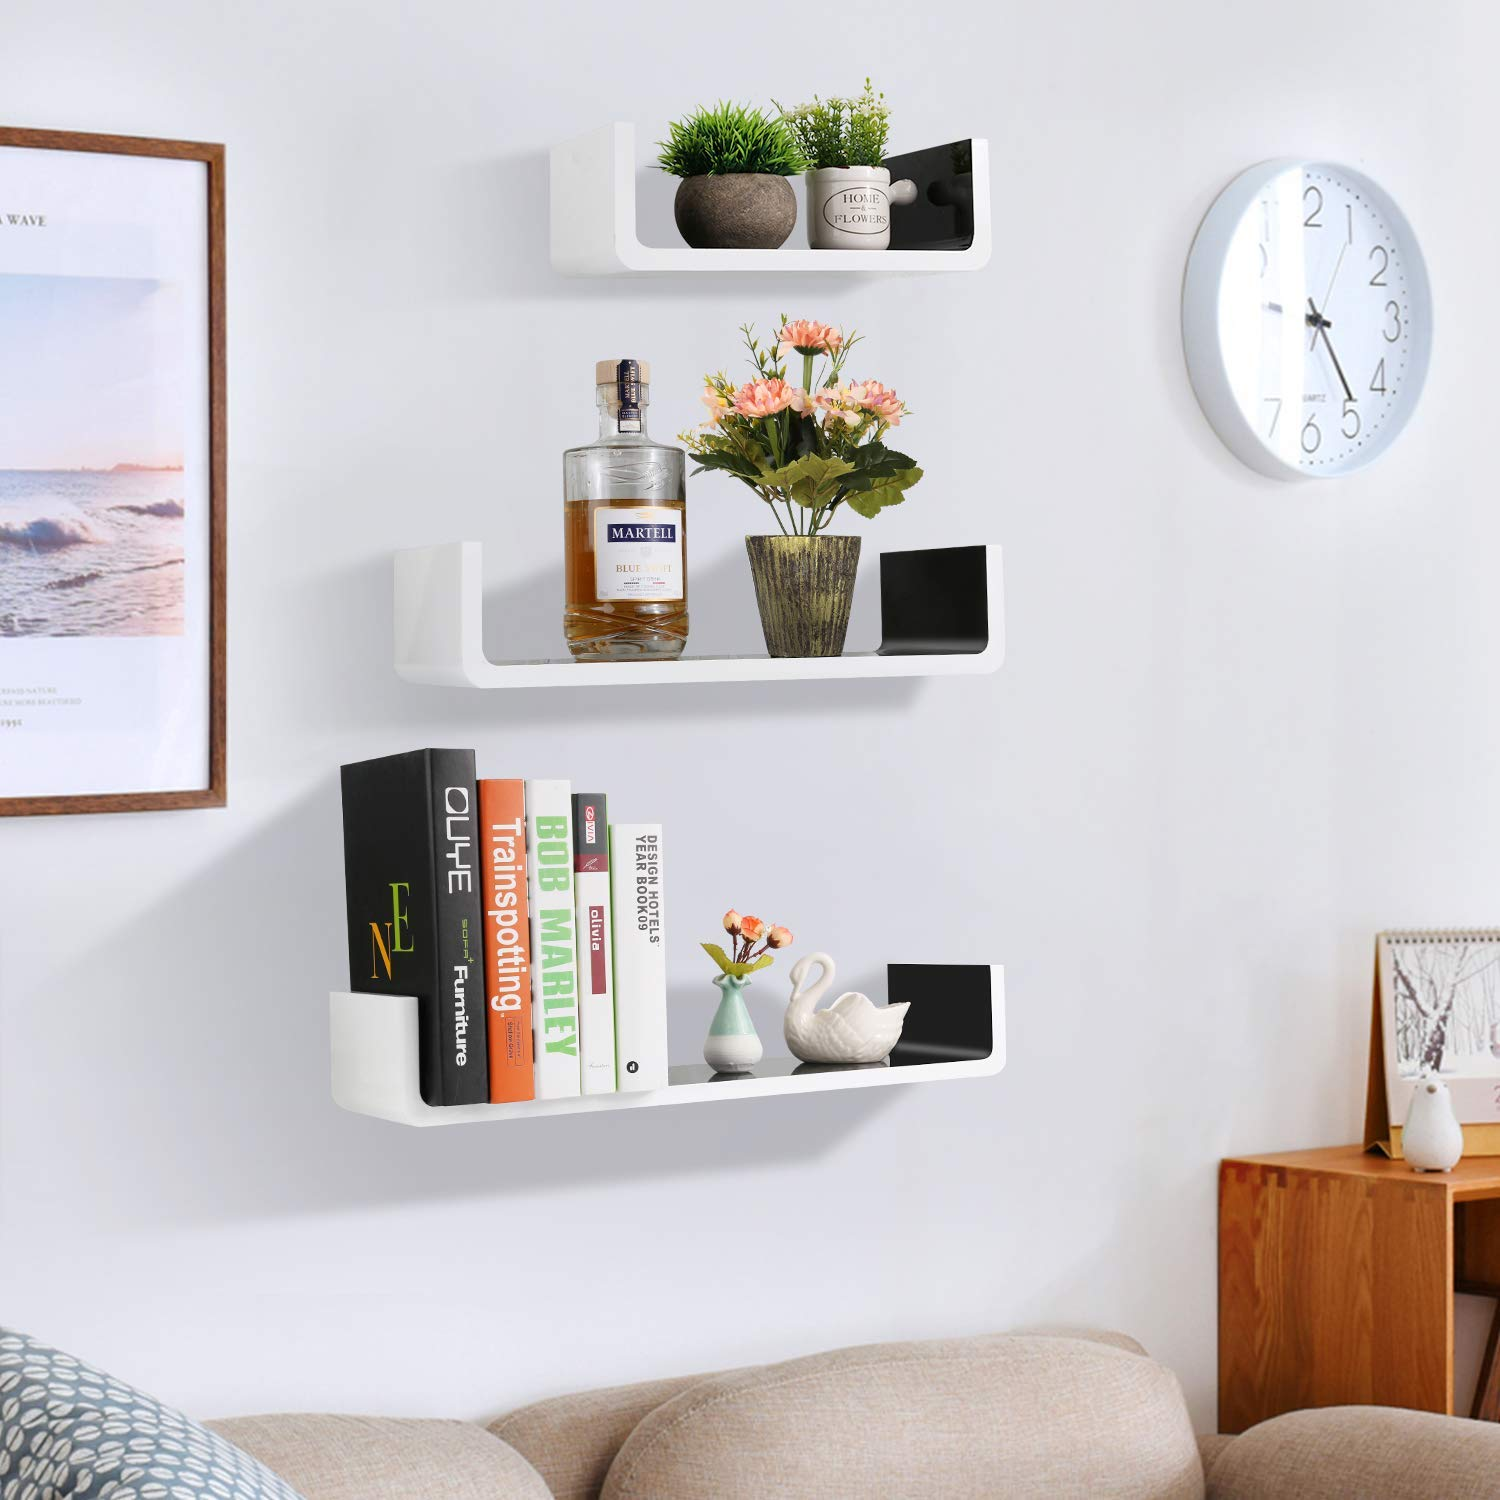 white and black wall shelves floating wooden qal bookshelf shelving storage set shape mount bookcase for living room ikea table top metal wood coat rack desk chair gray compact